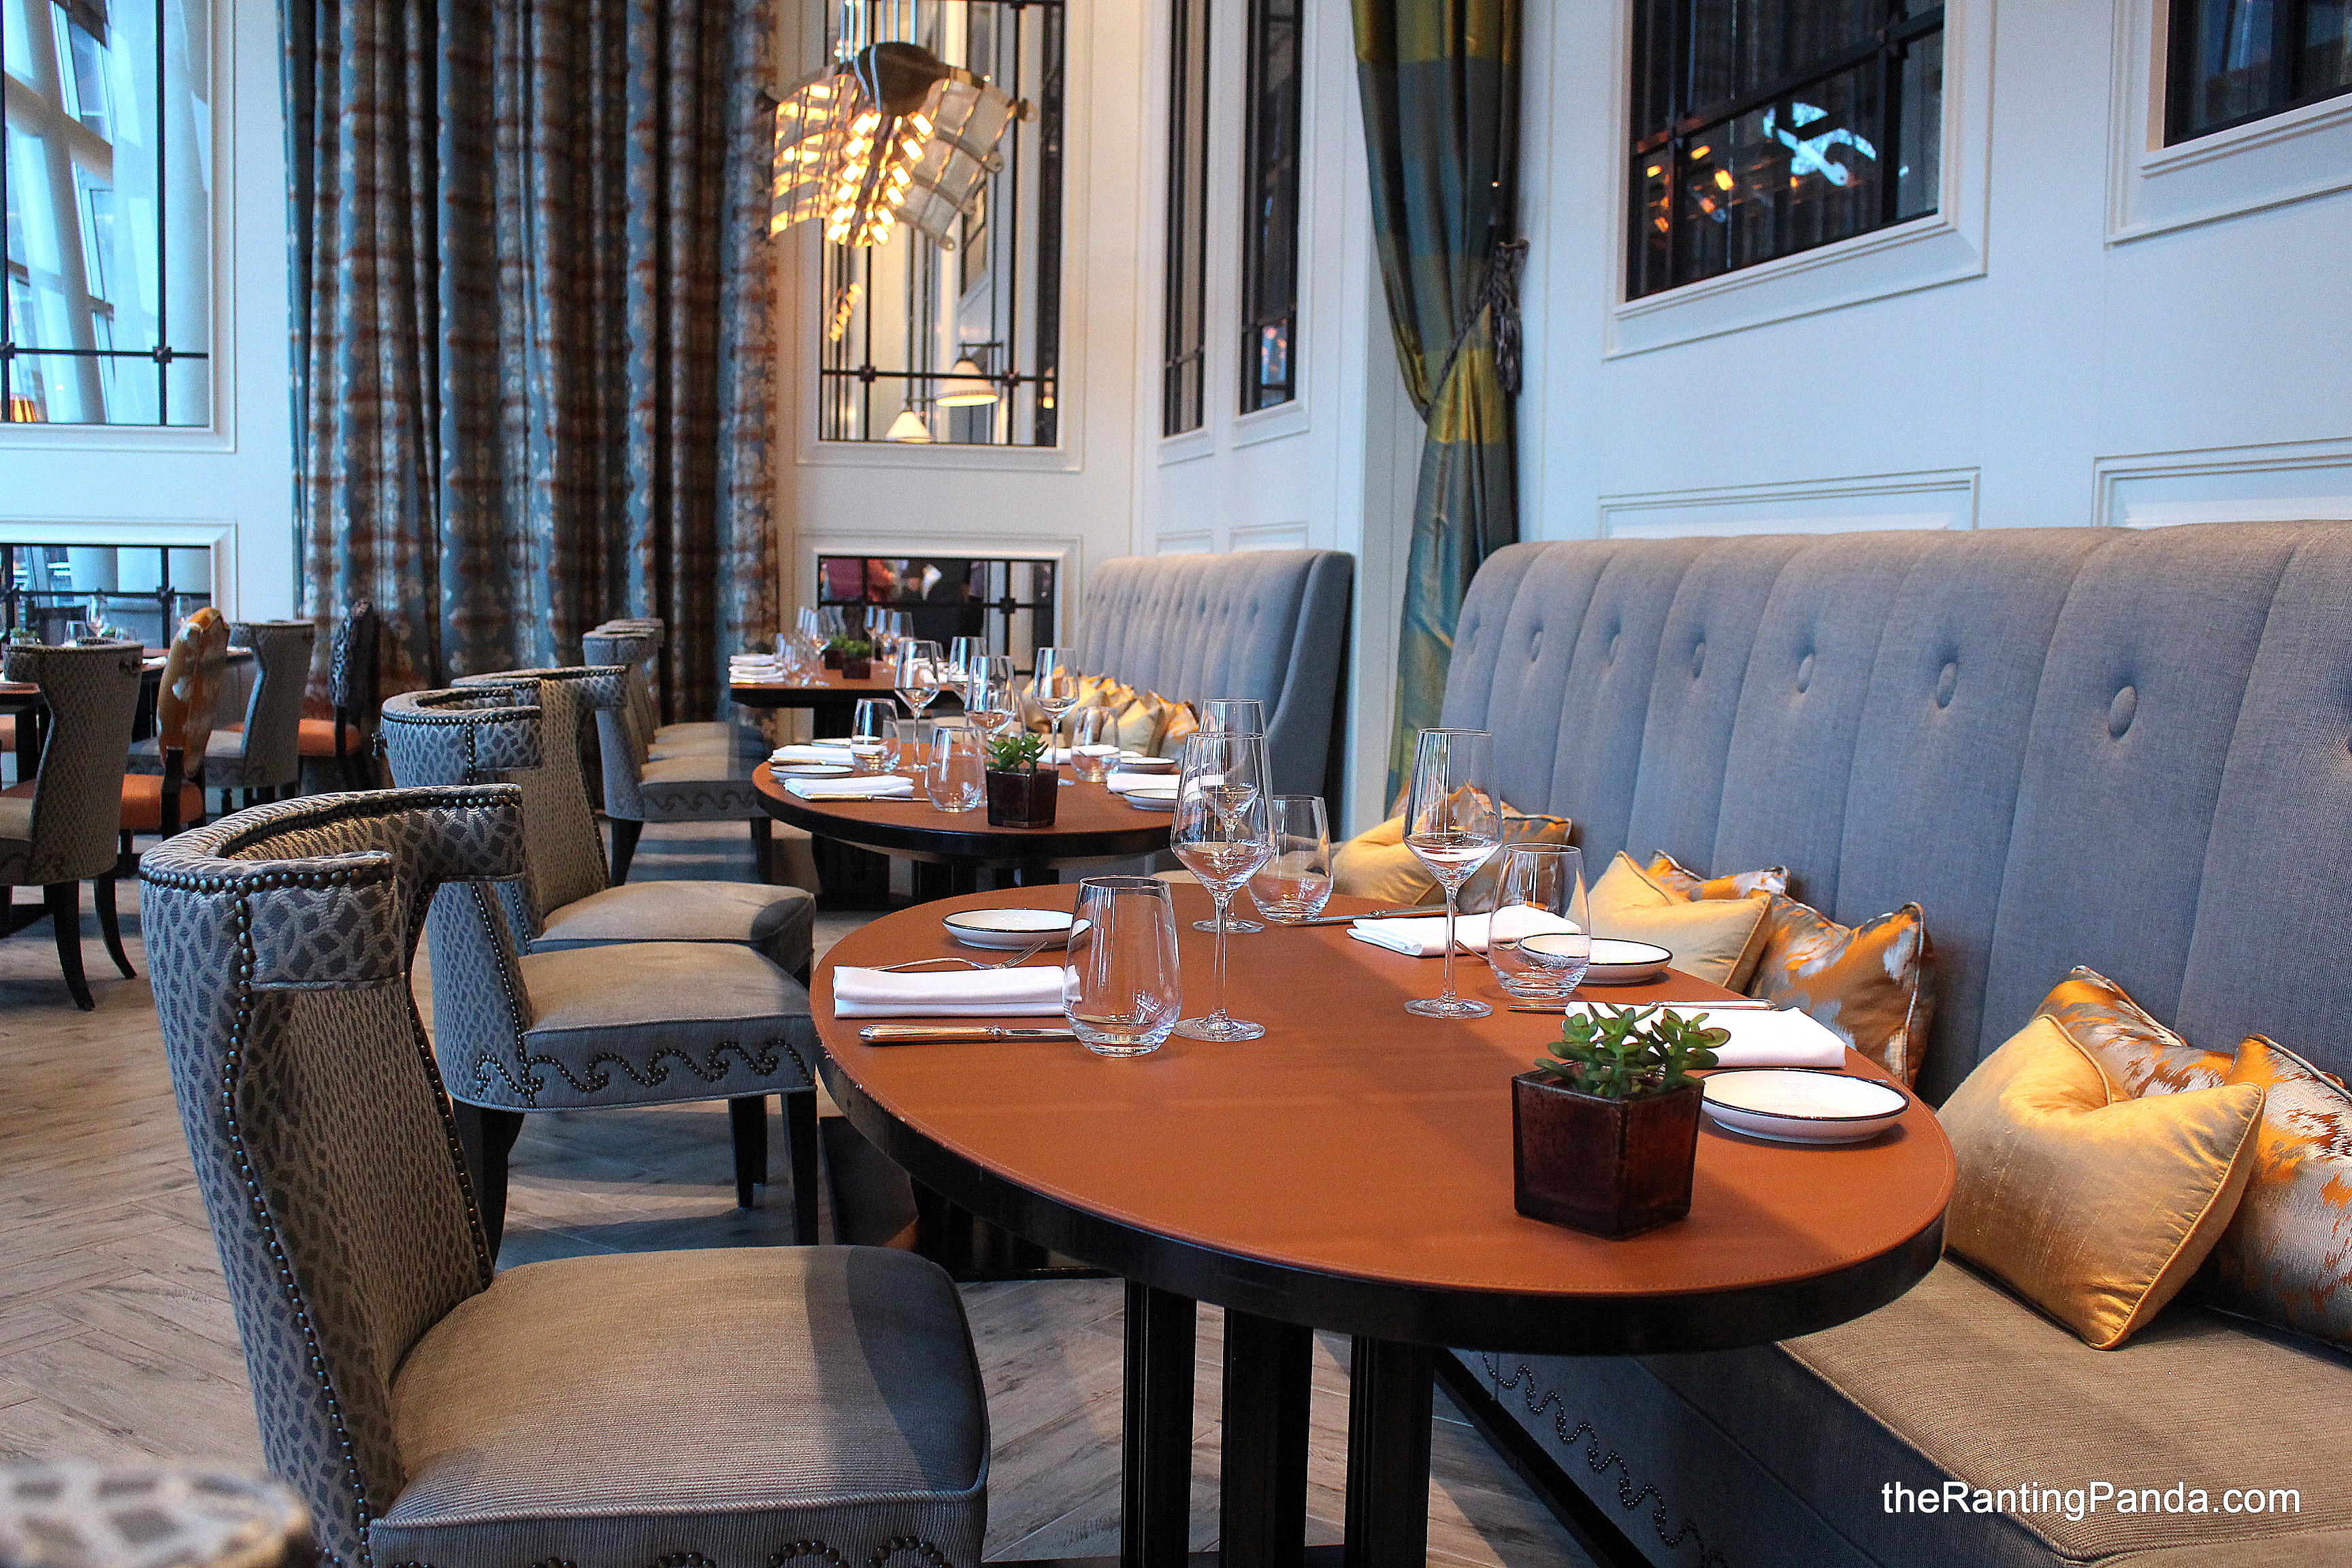 Amazing The Dining Room Review Part - 13: The Food The Theme Of La Brasserie Is U0027cuisine Du Soleilu0027, Or U0027cuisine Of  The Sunu0027 With Highlights From Southern France And Mediterranean Inspired  Flavours.